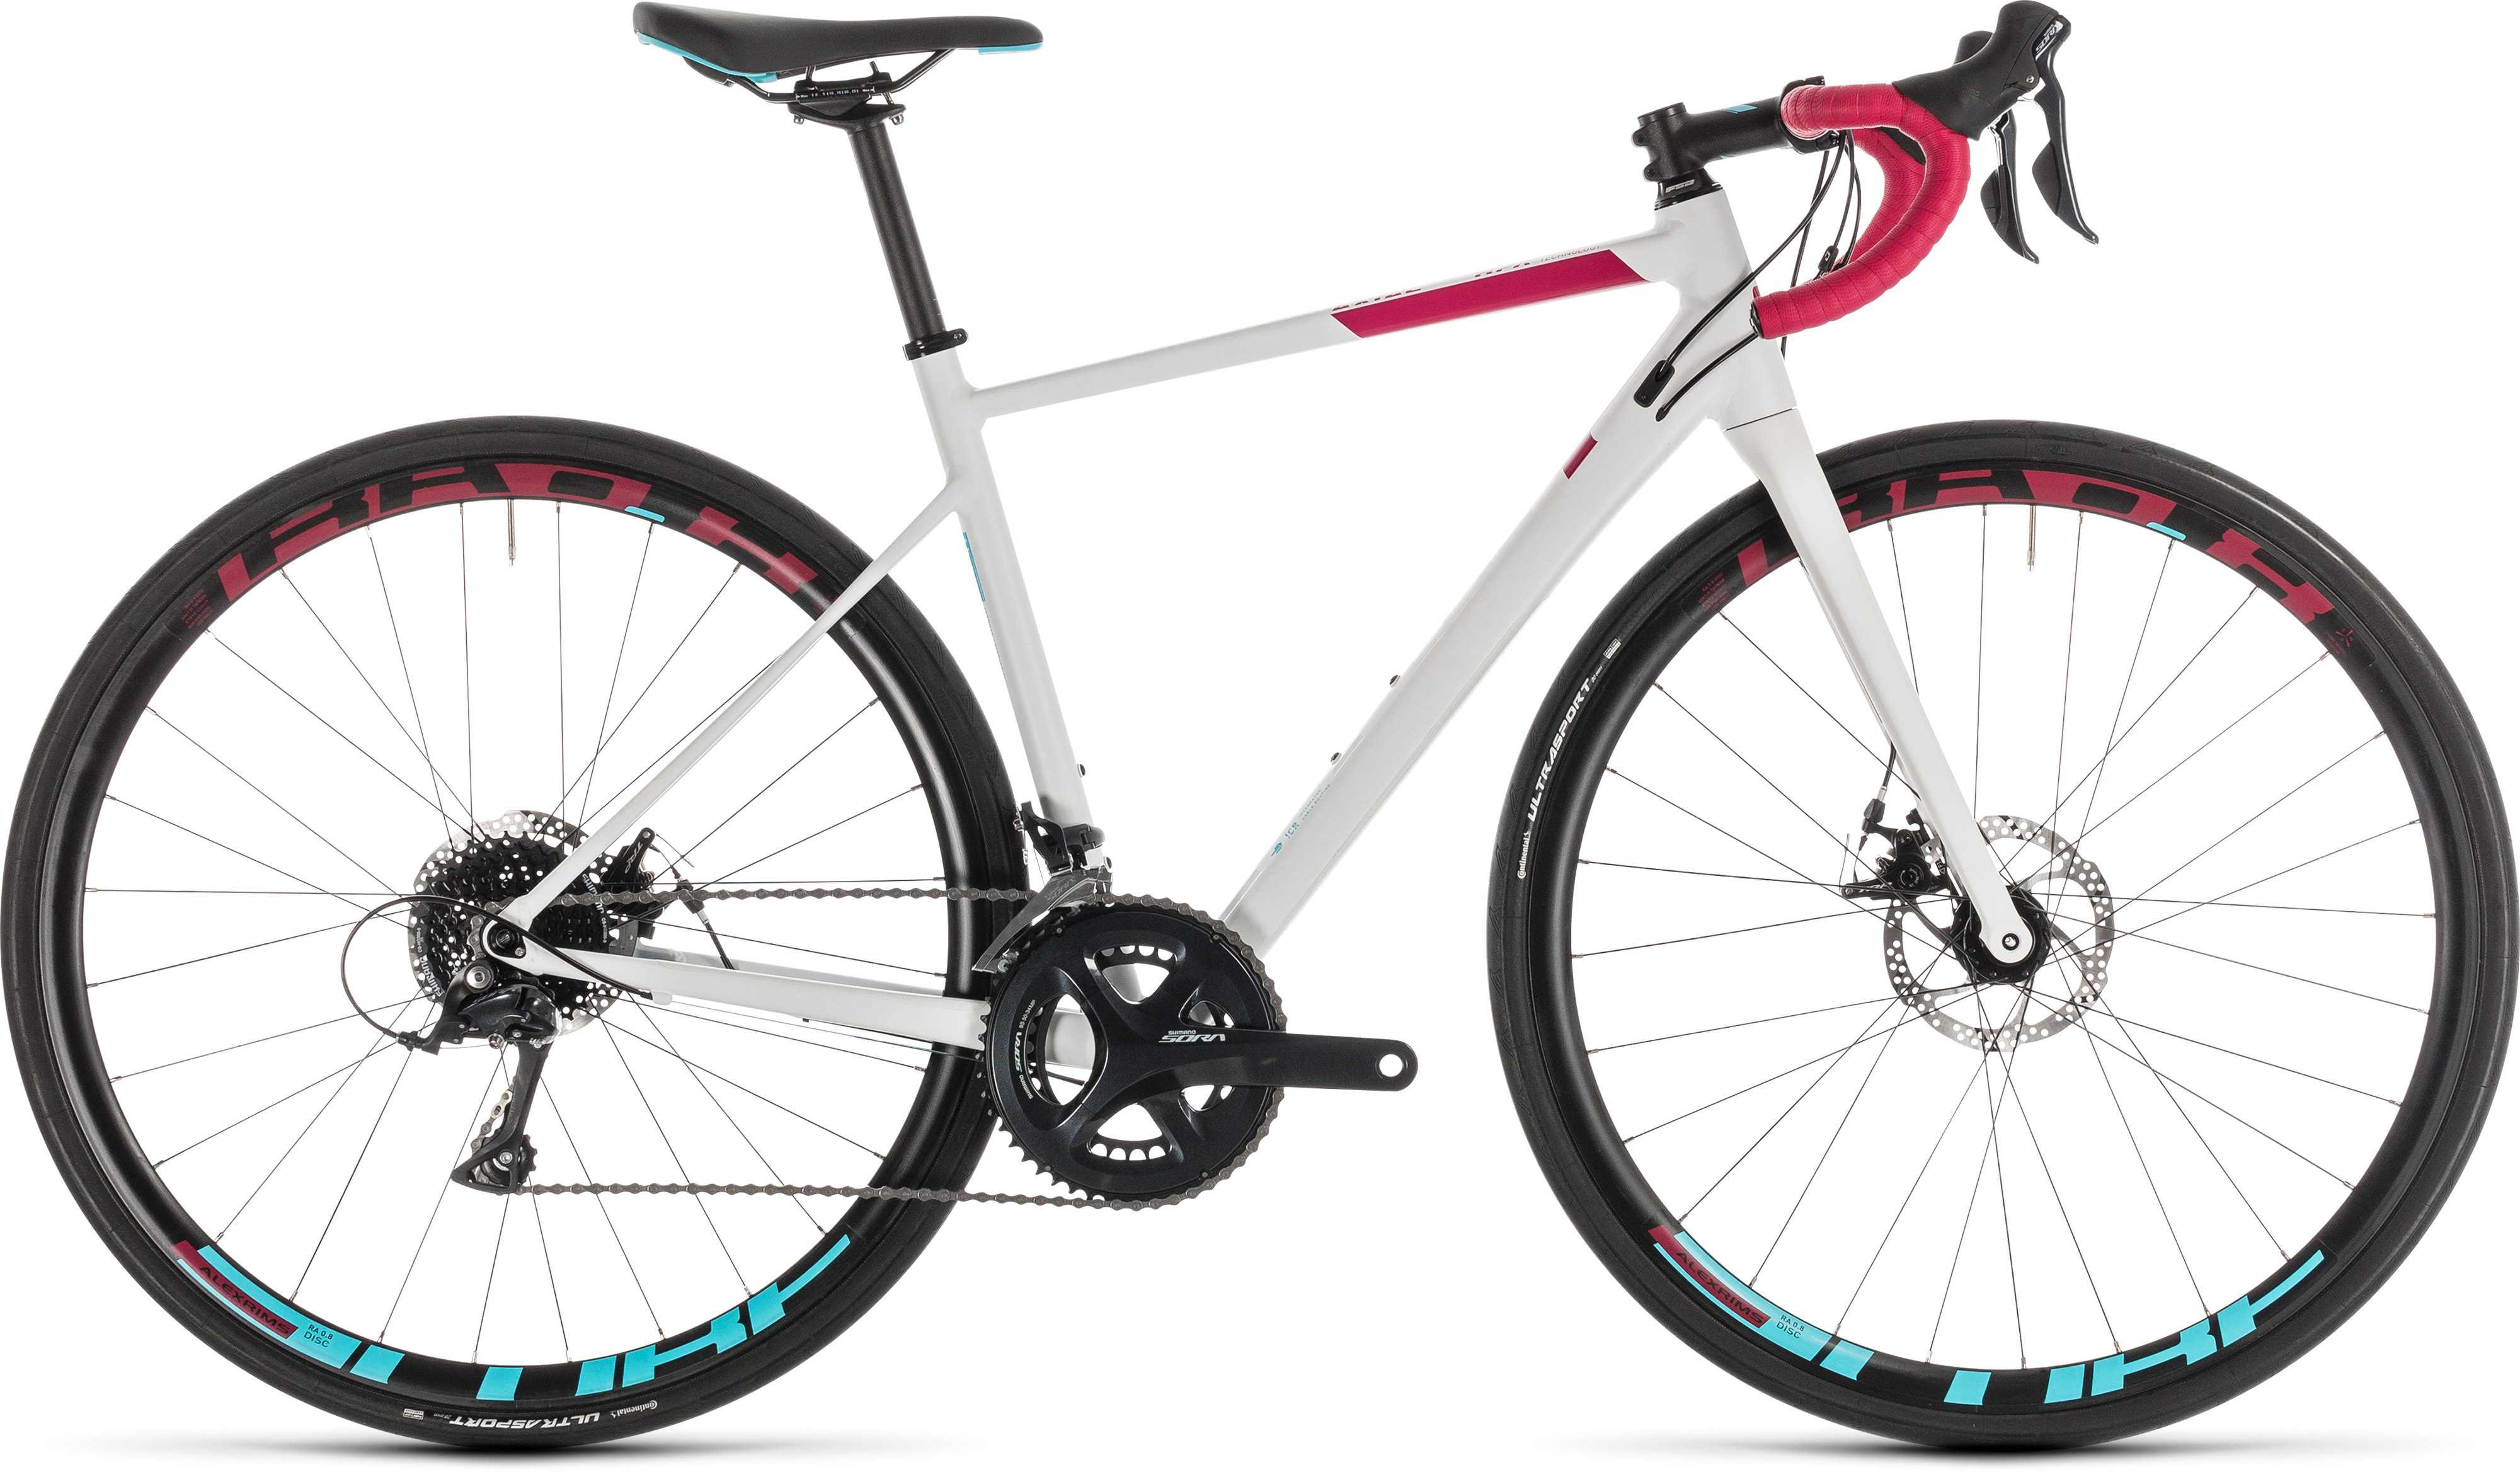 Cube Axial WS Pro Disc Womens Road Bike (2019) | Road bikes